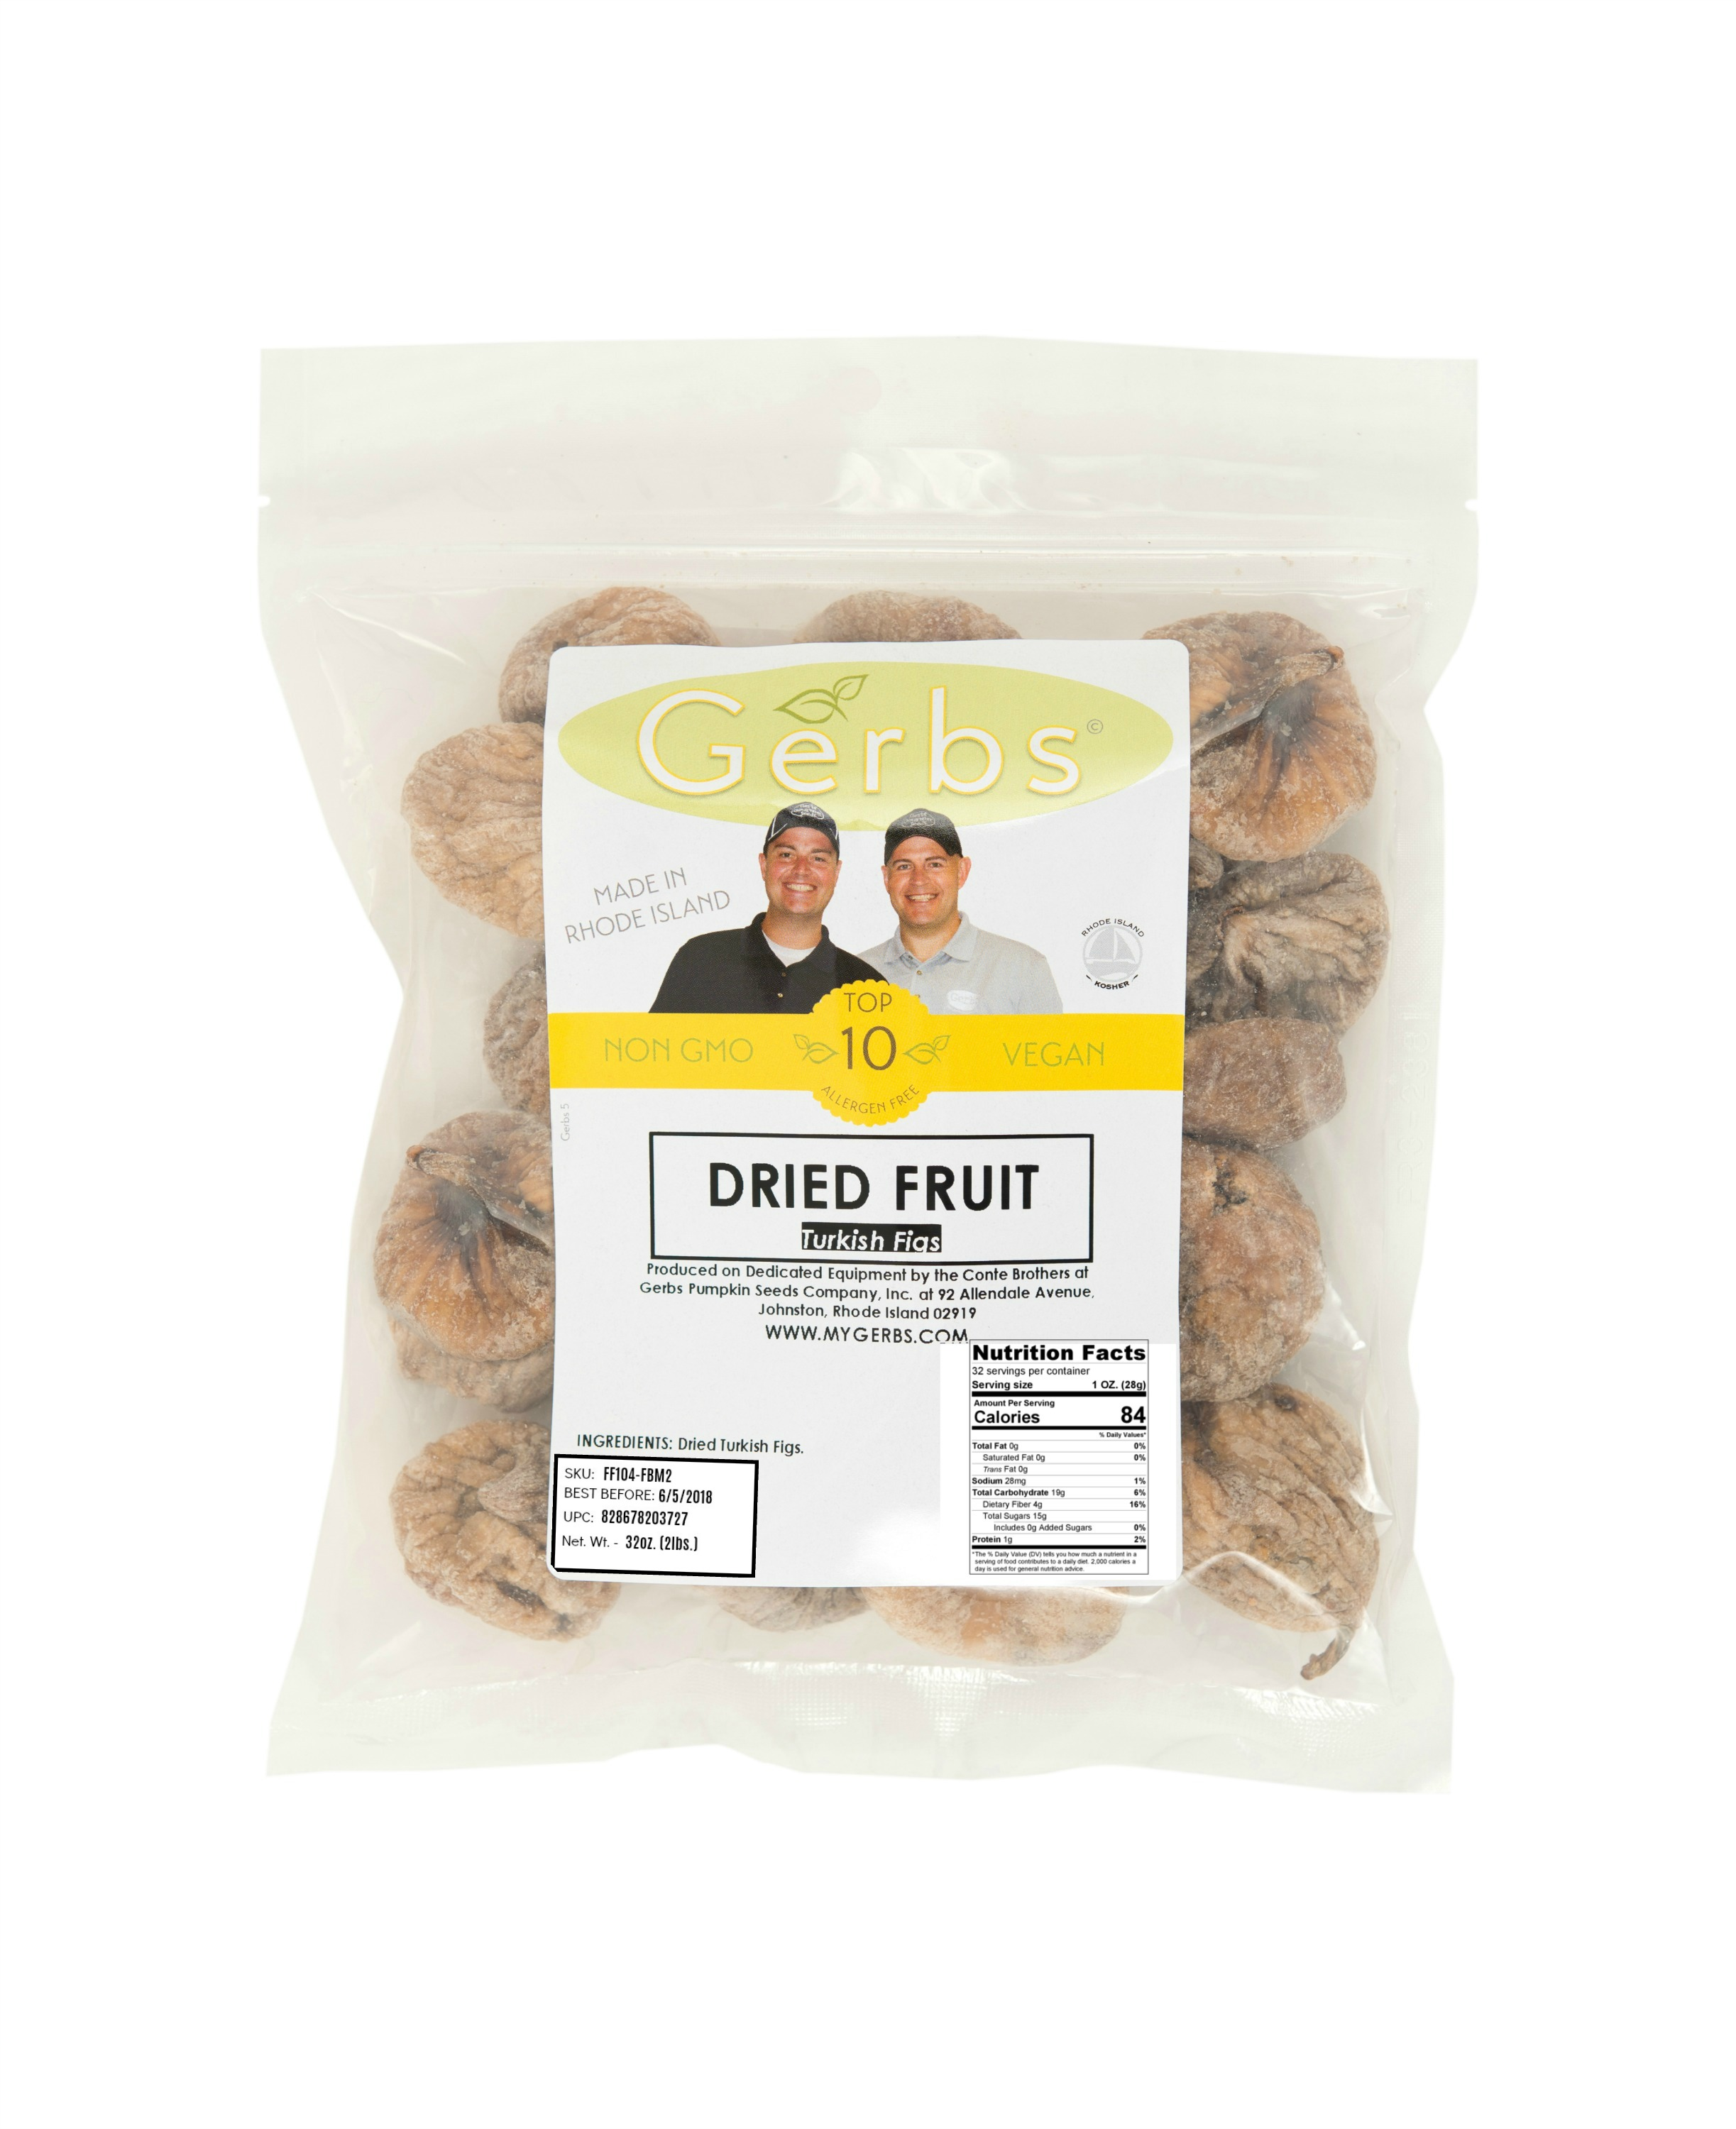 Dried Whole Figs by Gerbs 2 LBS Preservative Free Top 12 Food Allergen Friendly & NON GMO... by Gerbs Allergen Friendly Foods